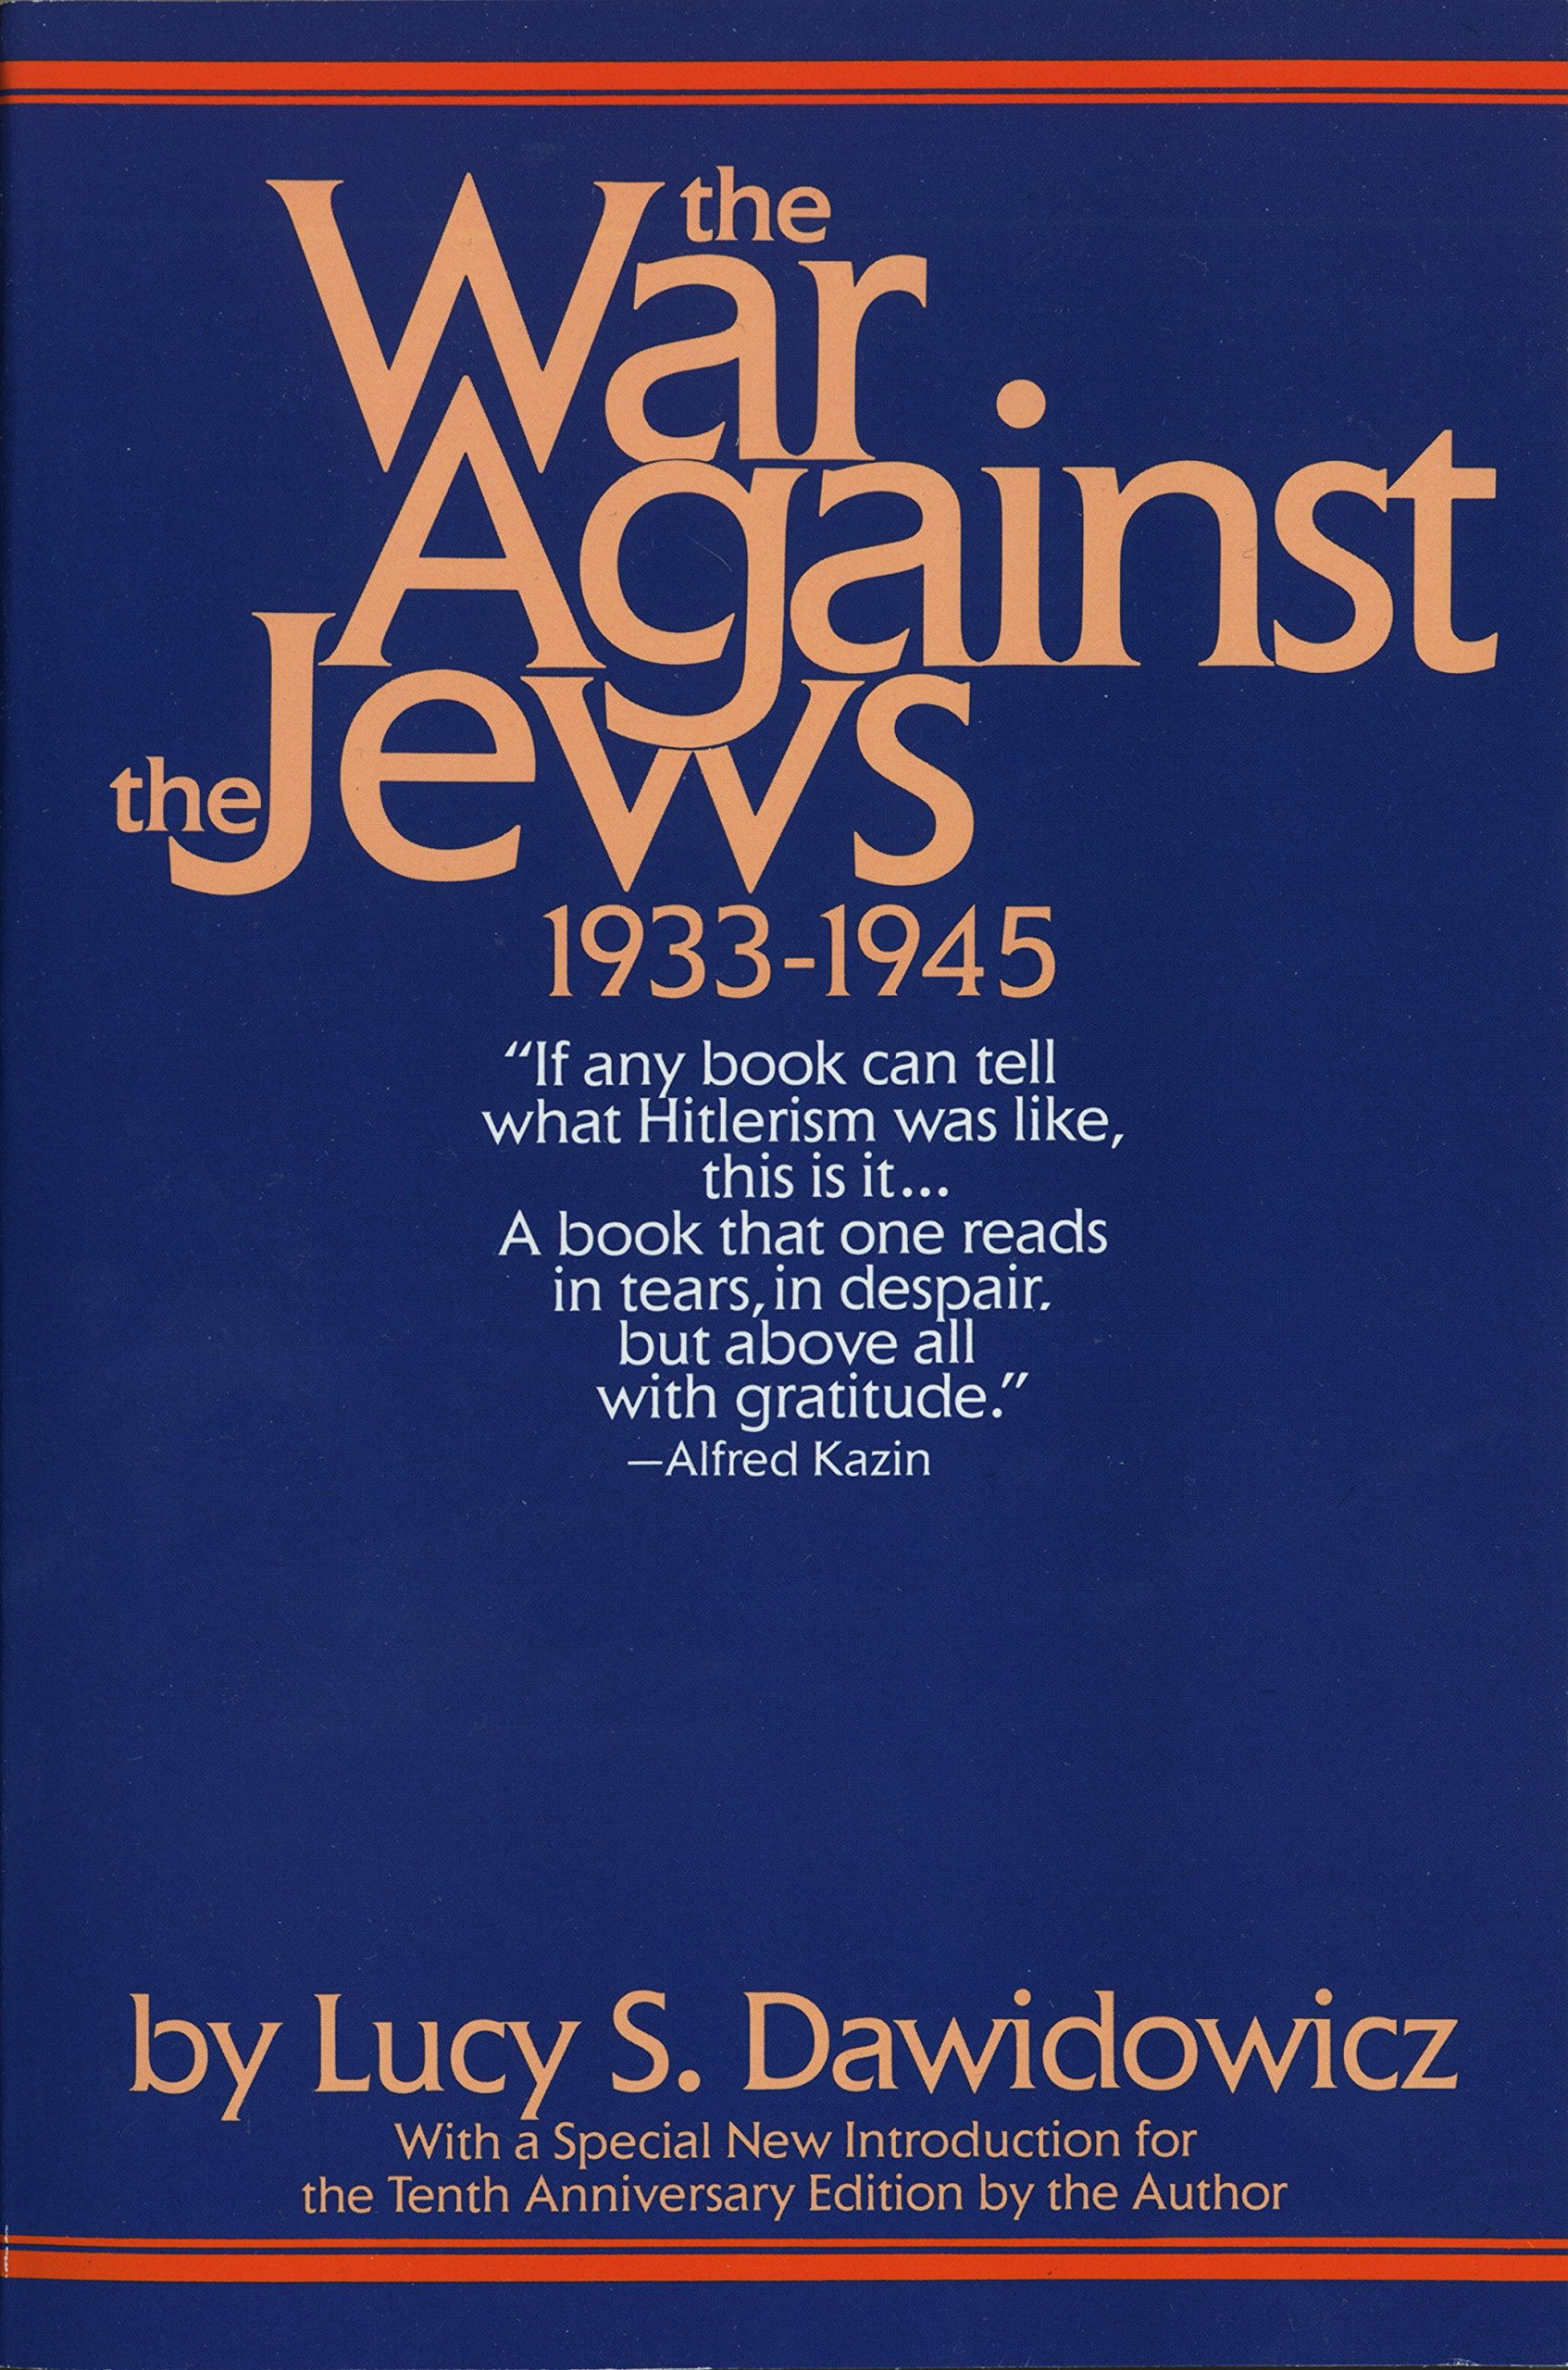 The War Against the Jews: 1933-1945